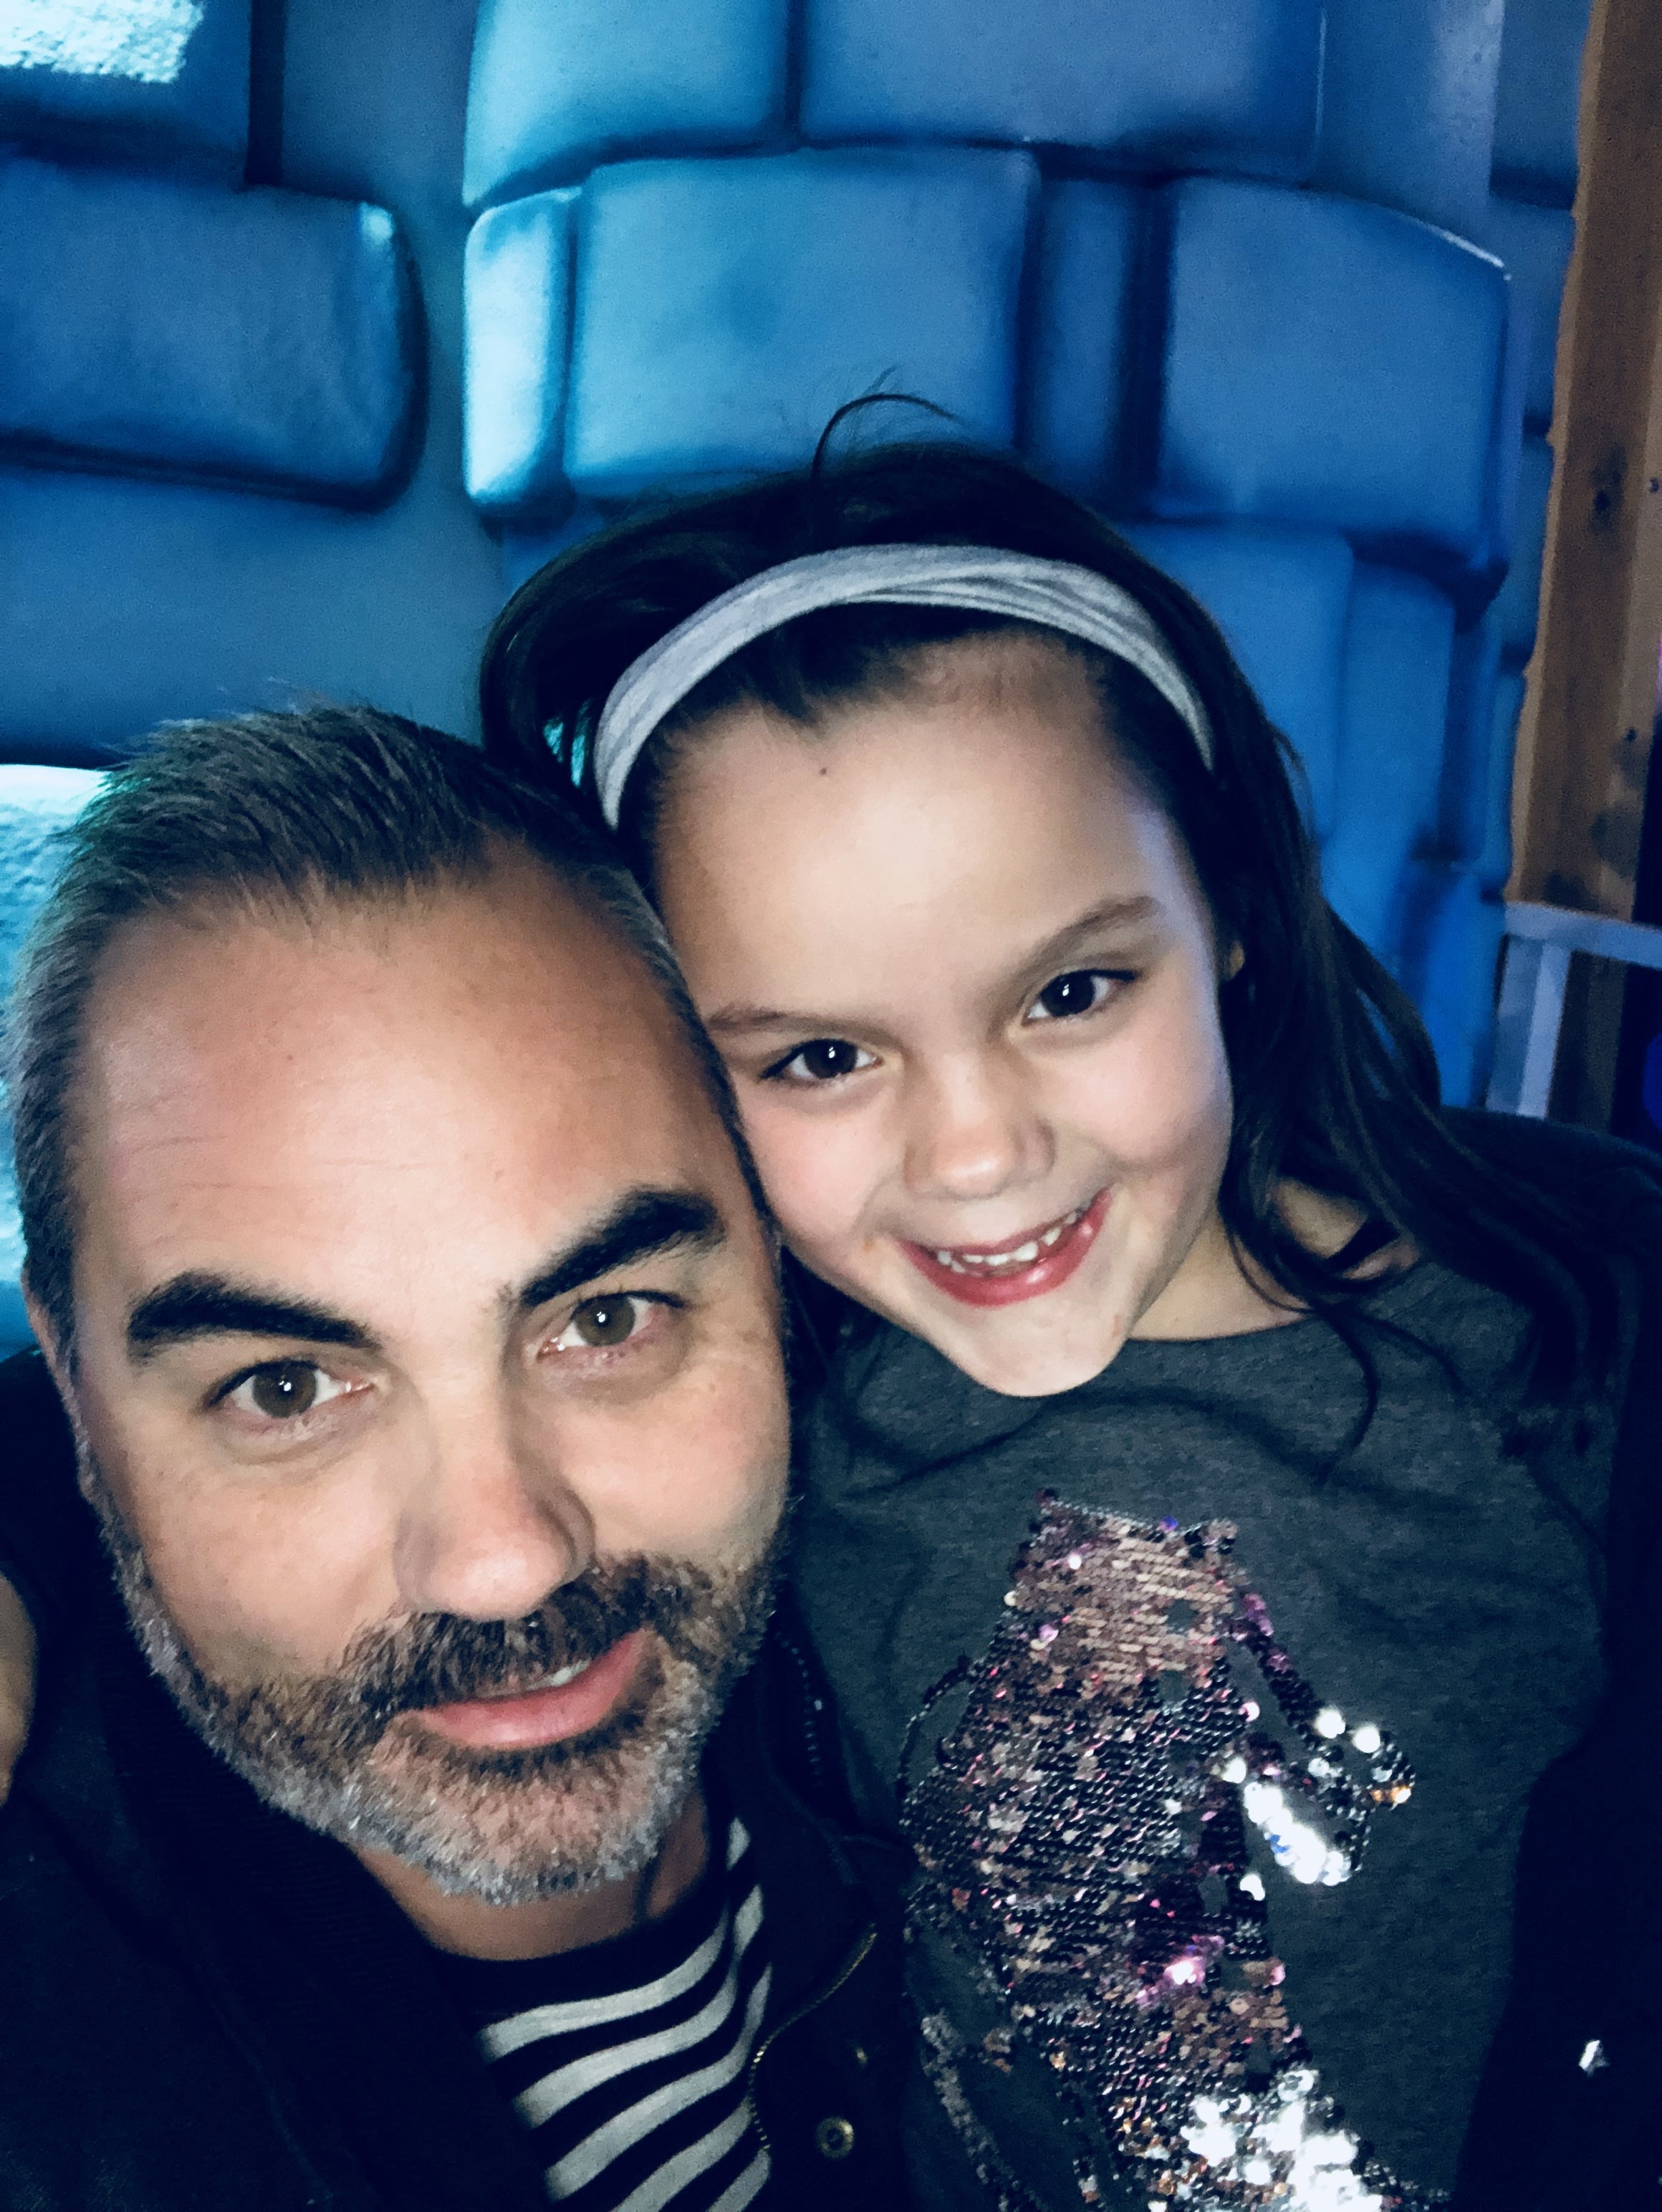 Me and my daughter Scarlett. December 2017